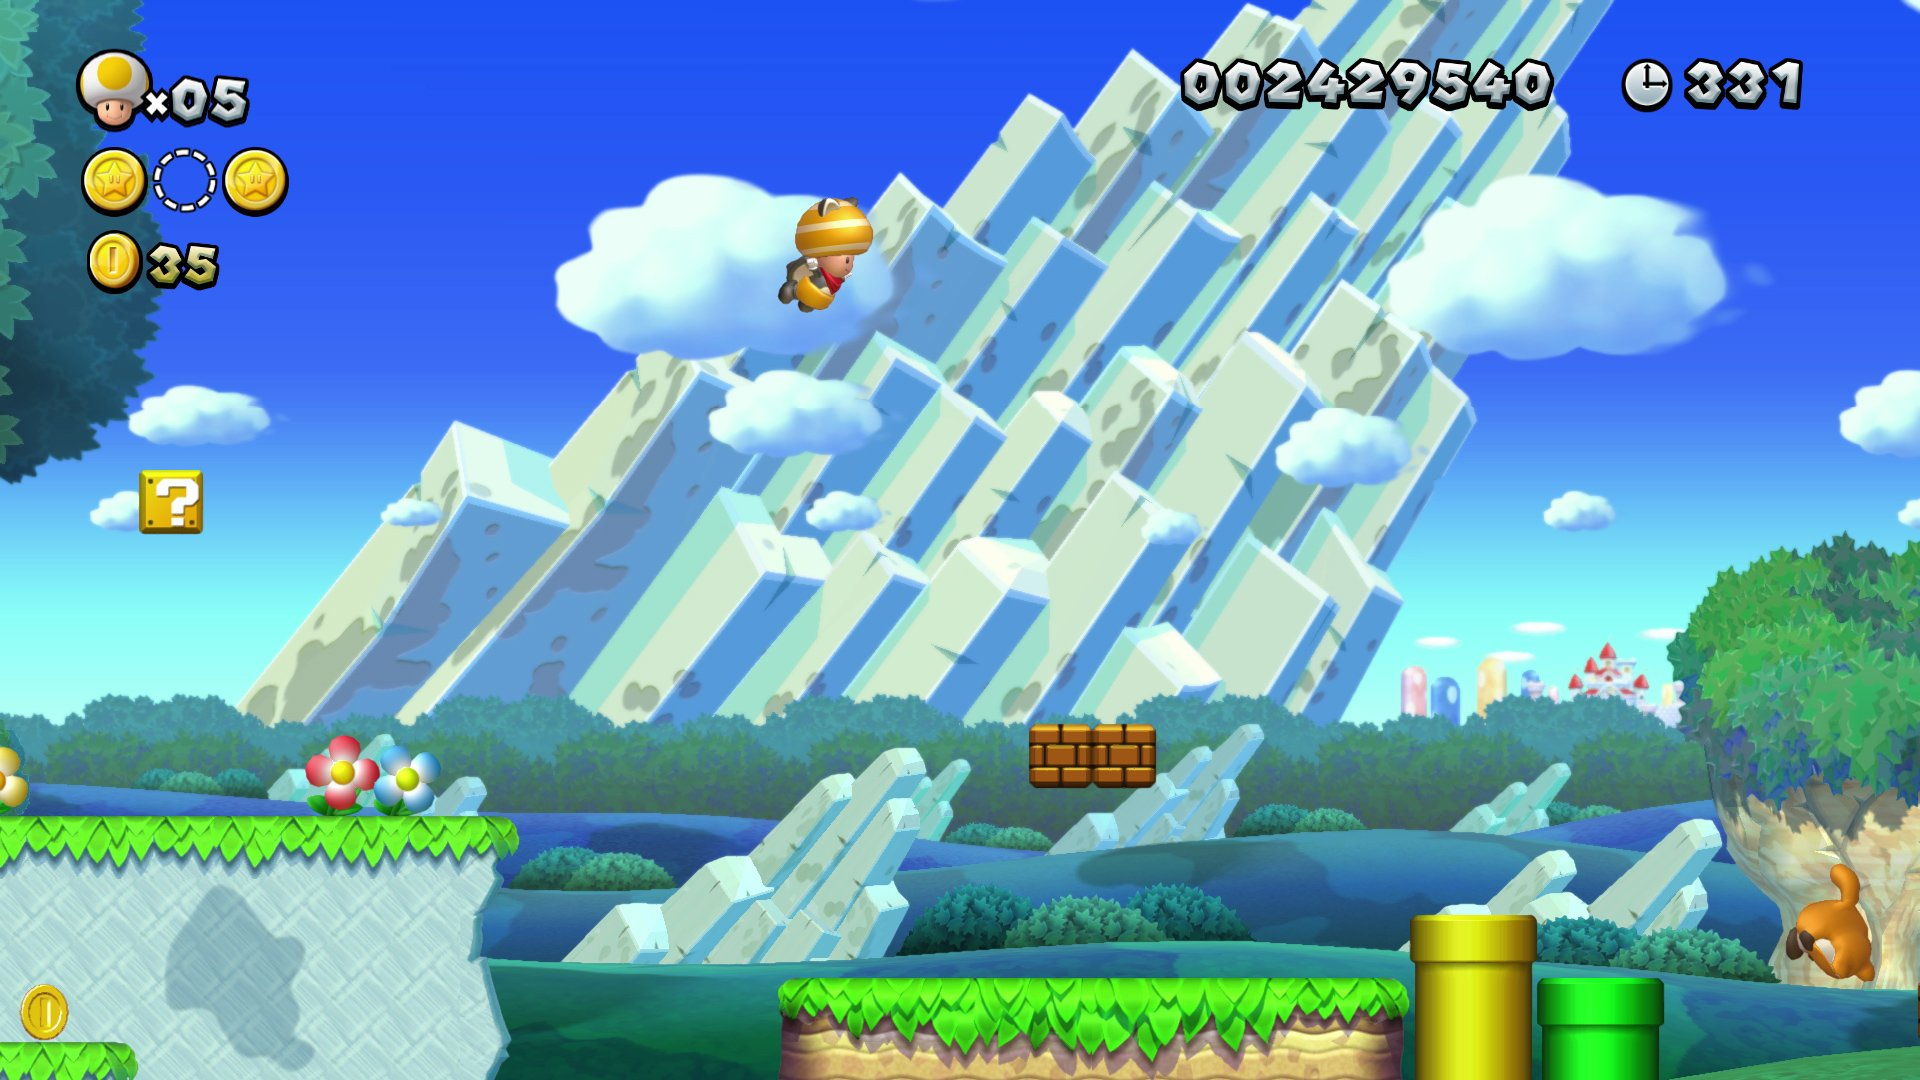 New Super Mario Bros  U Deluxe review: Just Peachy | Shacknews